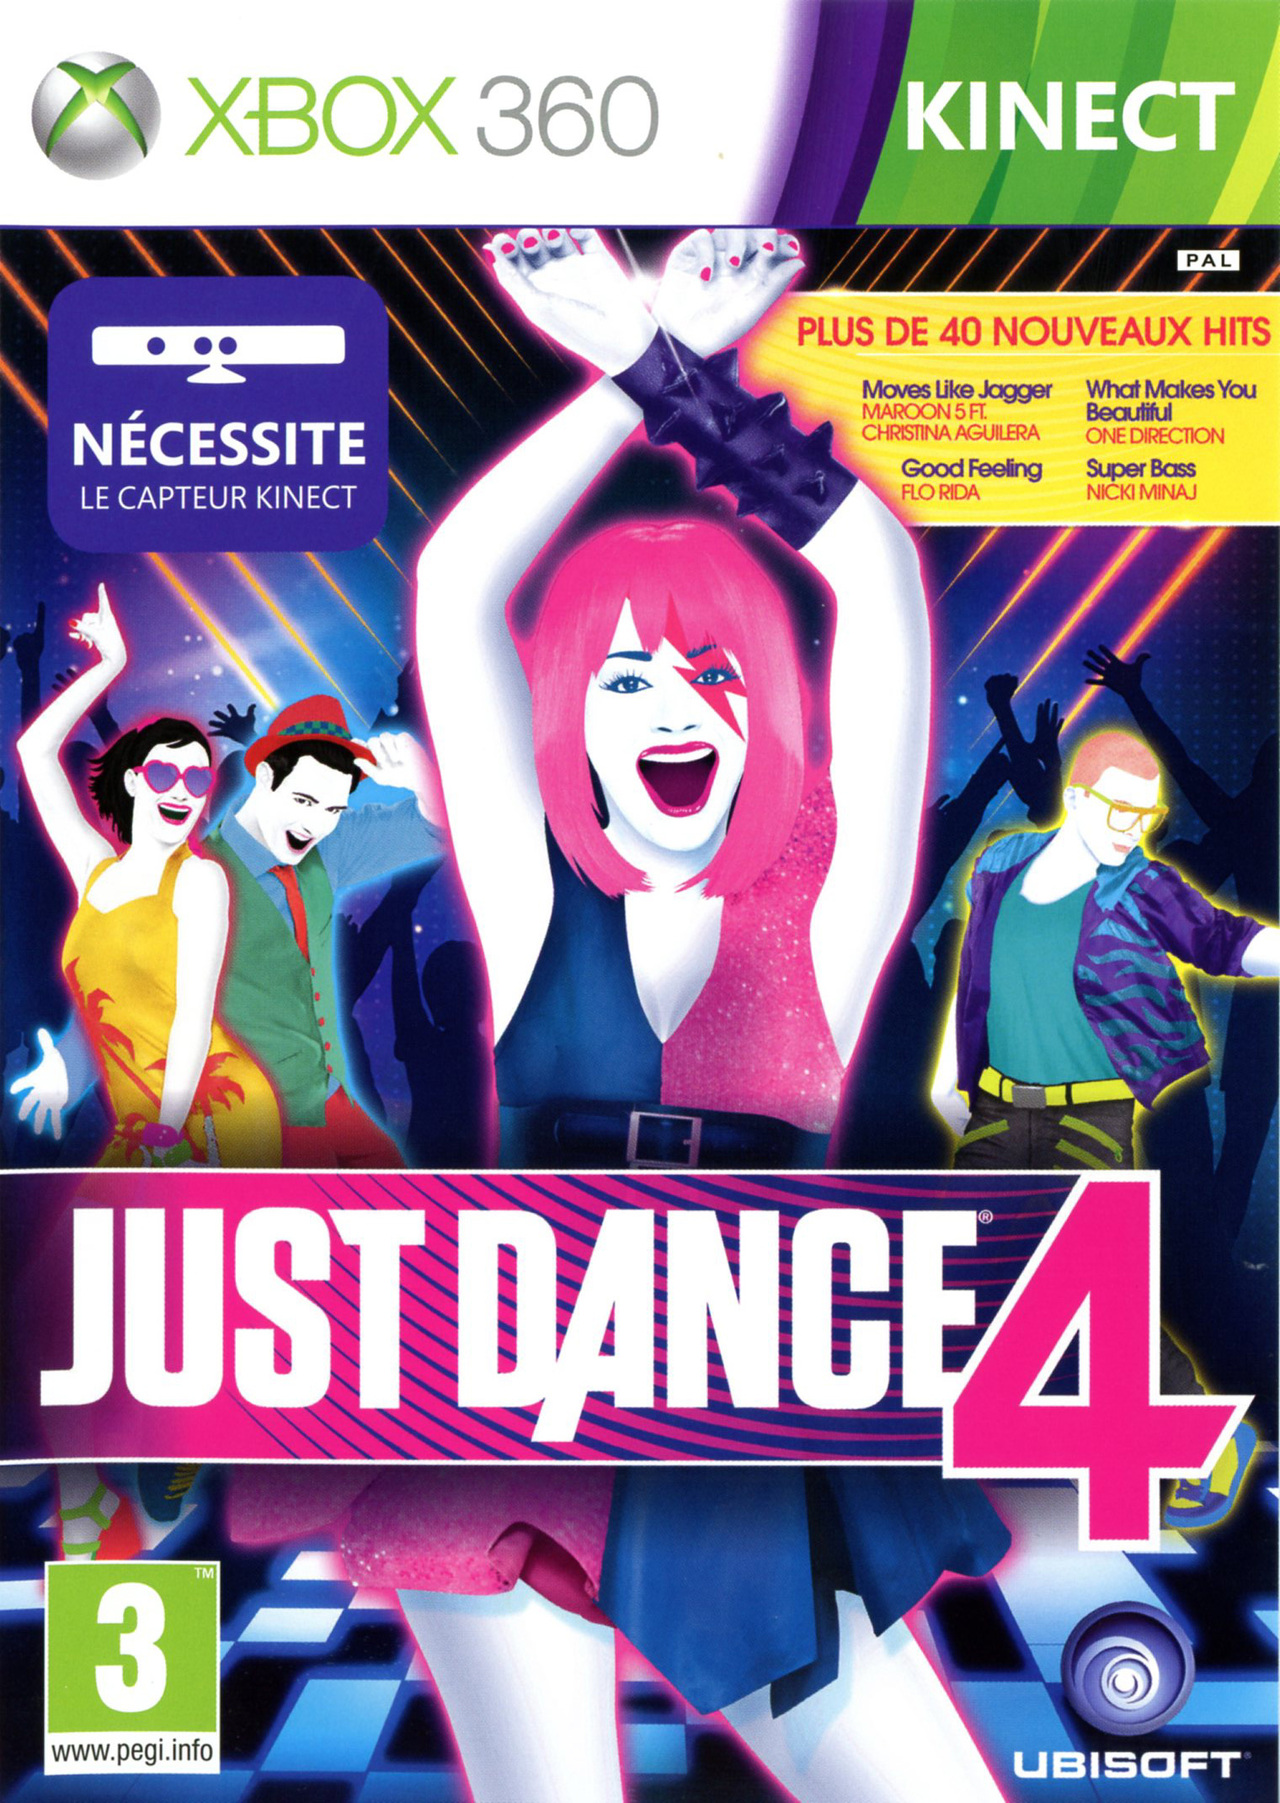 Just Dance Game For Xbox 360 : Just dance sur xbox jeuxvideo